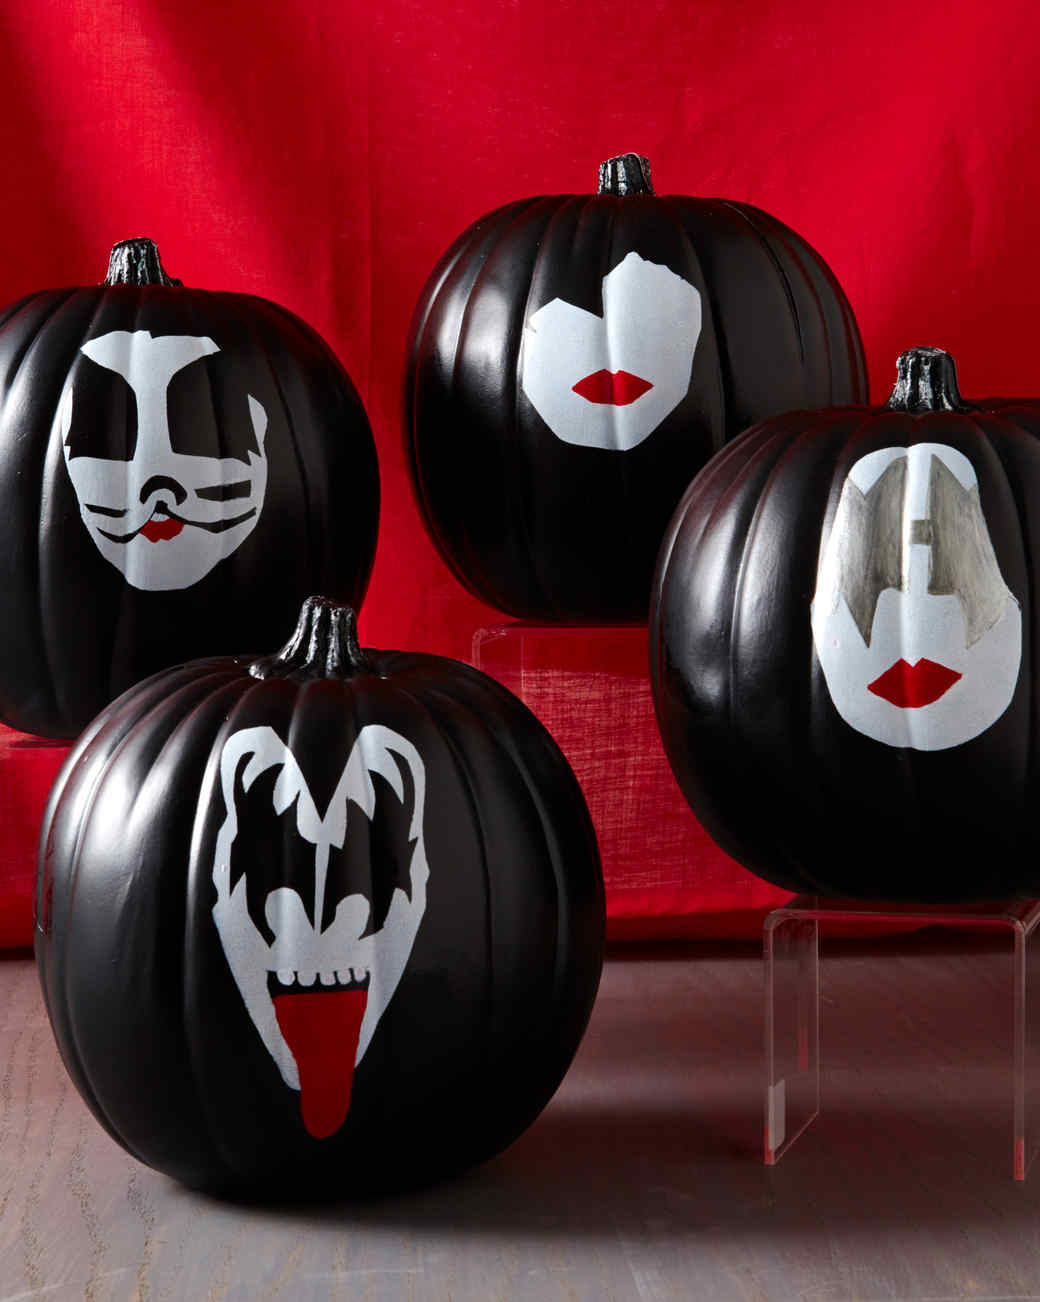 kiss-pumpkin-0042-d112573.jpg